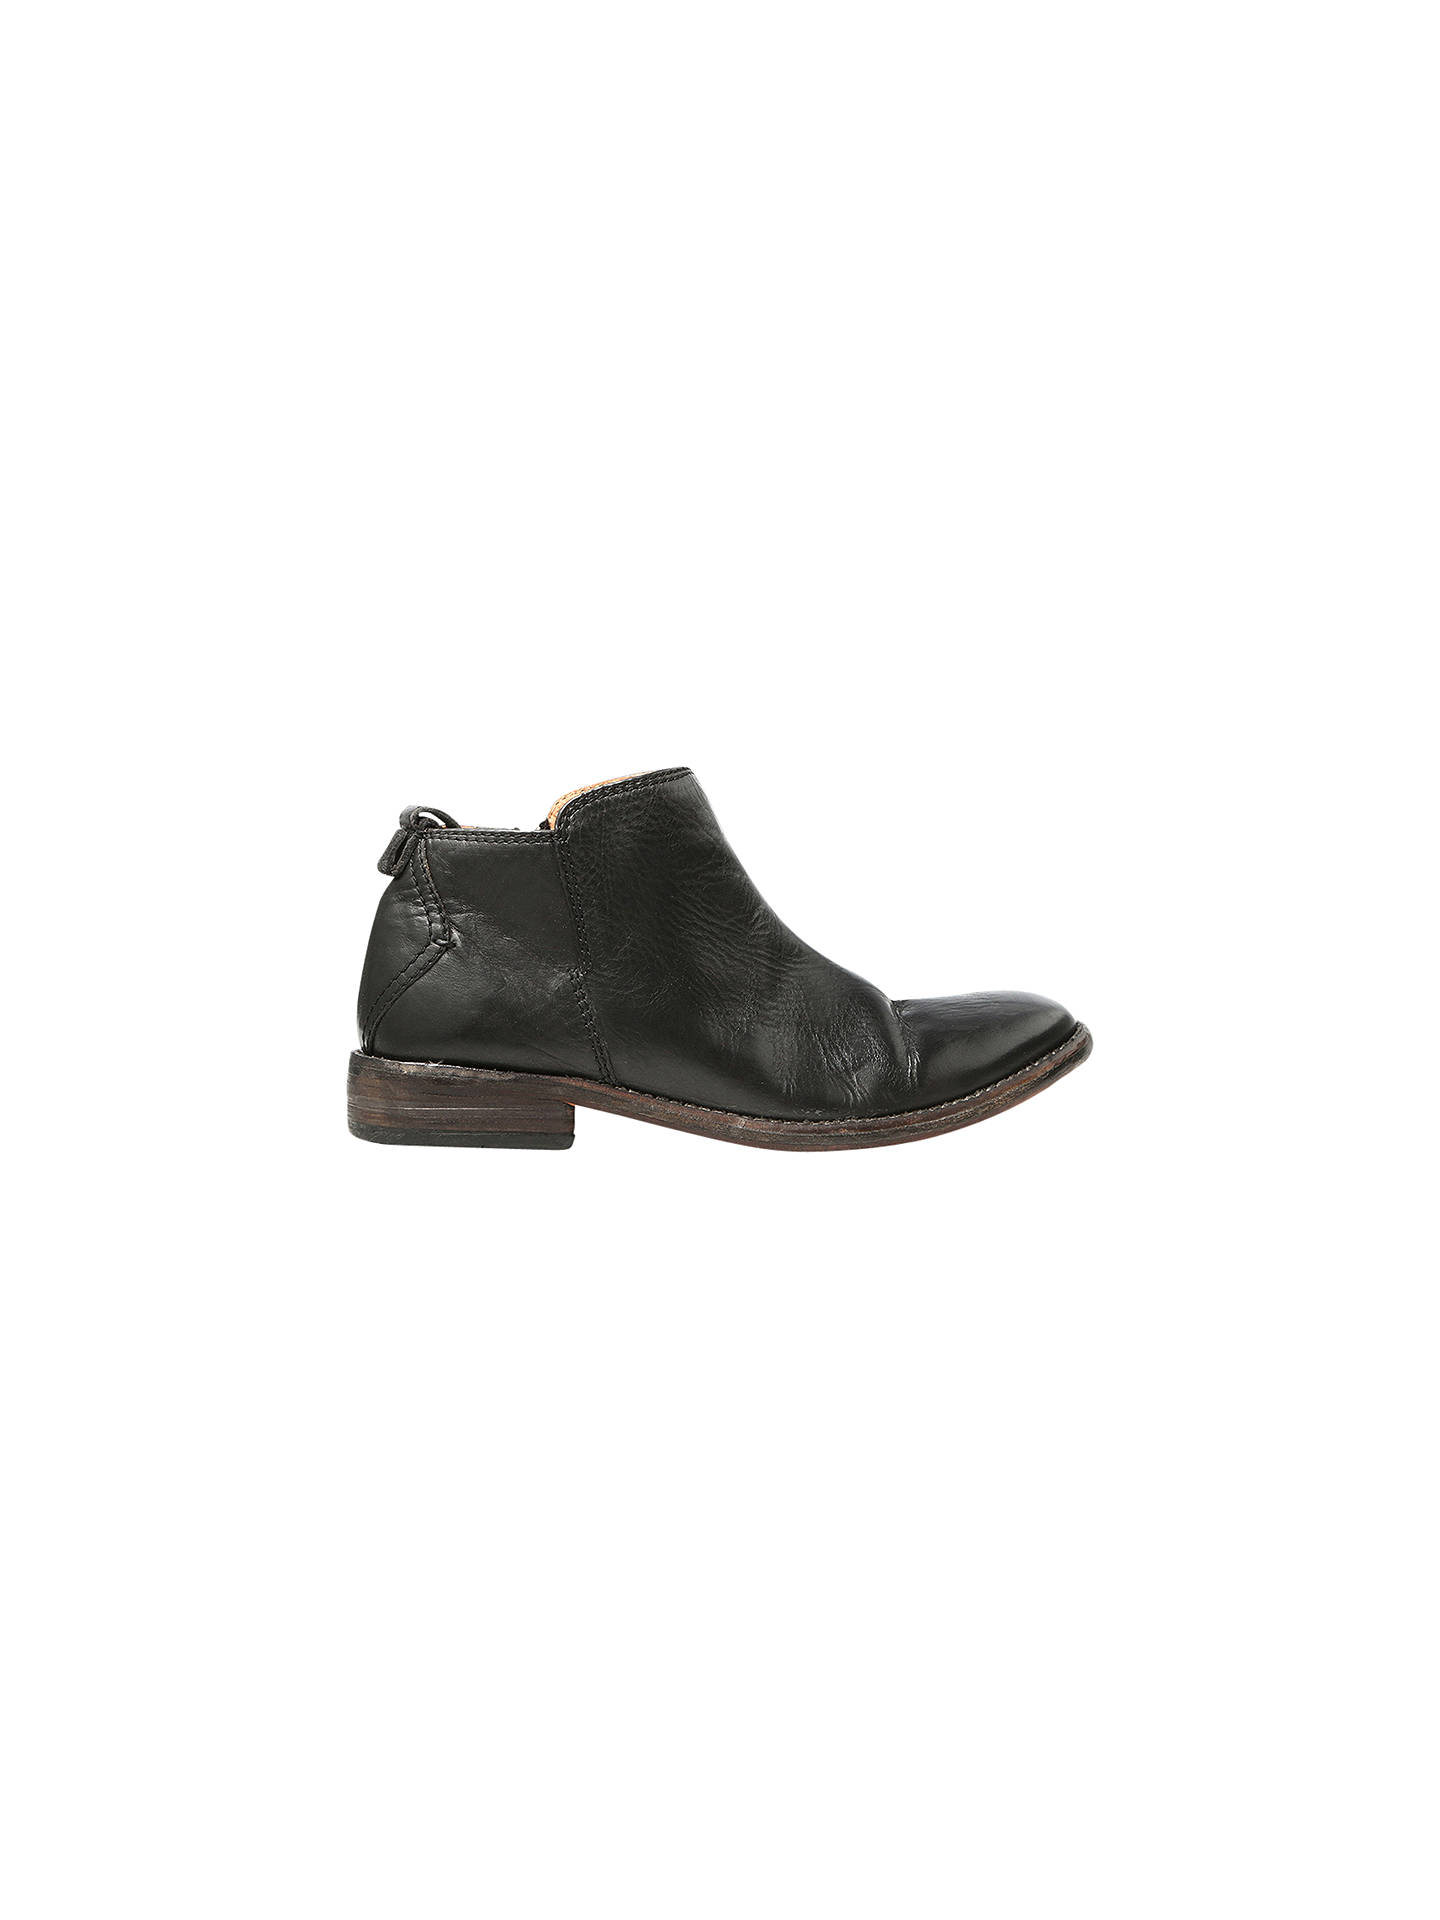 ce0e91ccd6d H by Hudson Revelin Ankle Boots at John Lewis & Partners